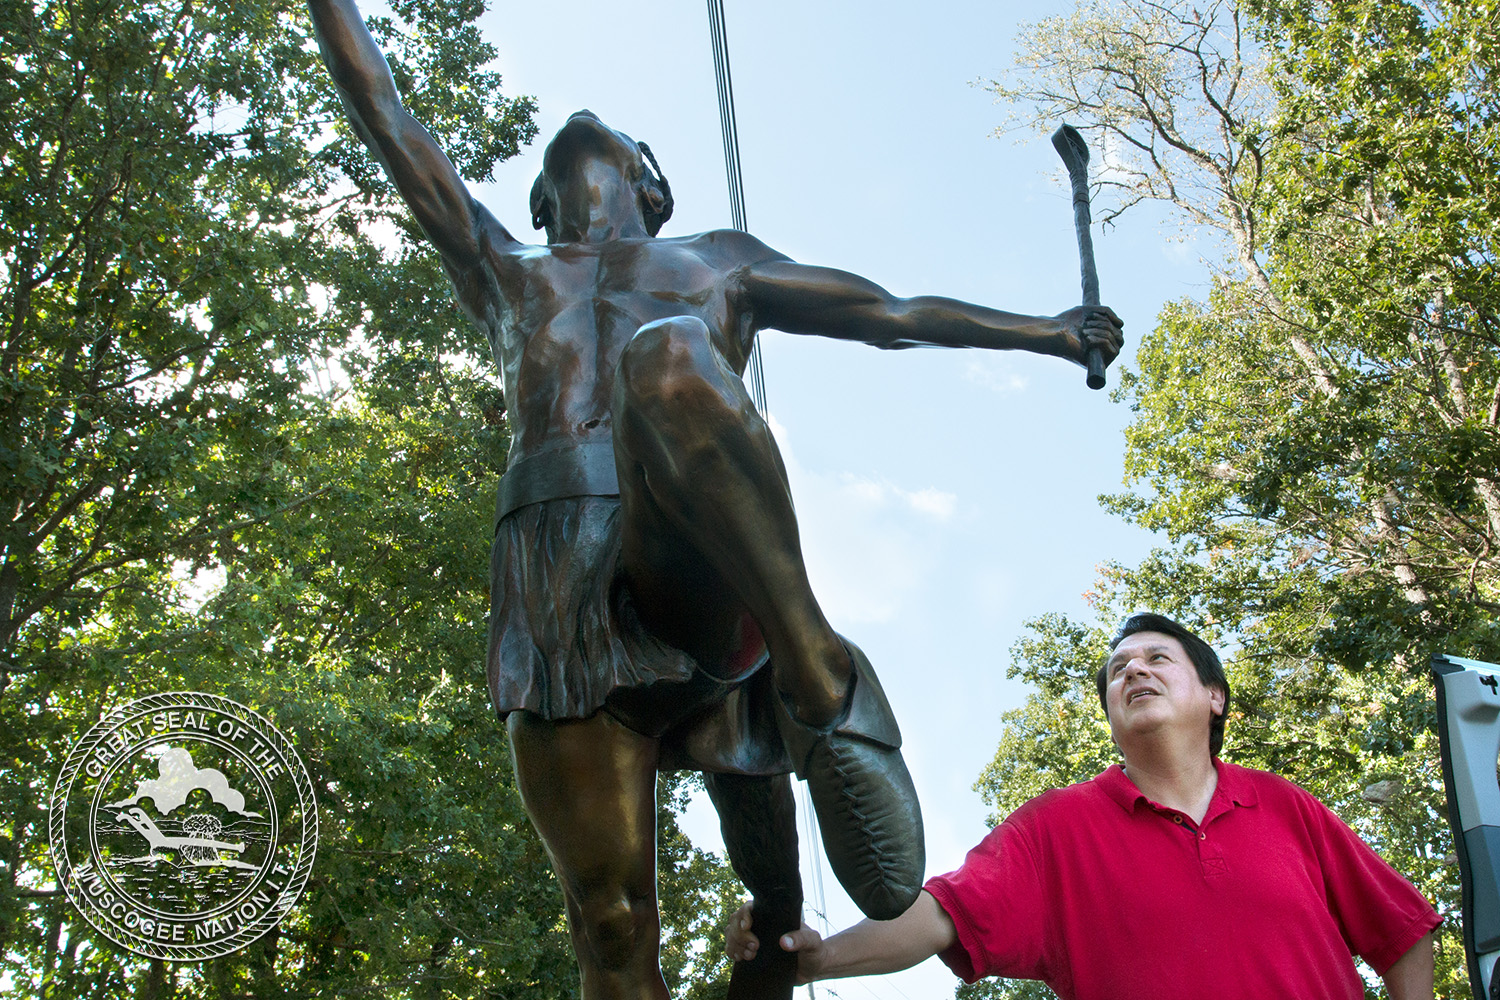 Muscogee (Creek) Nation, Native American Nations recognized with commemorative statue